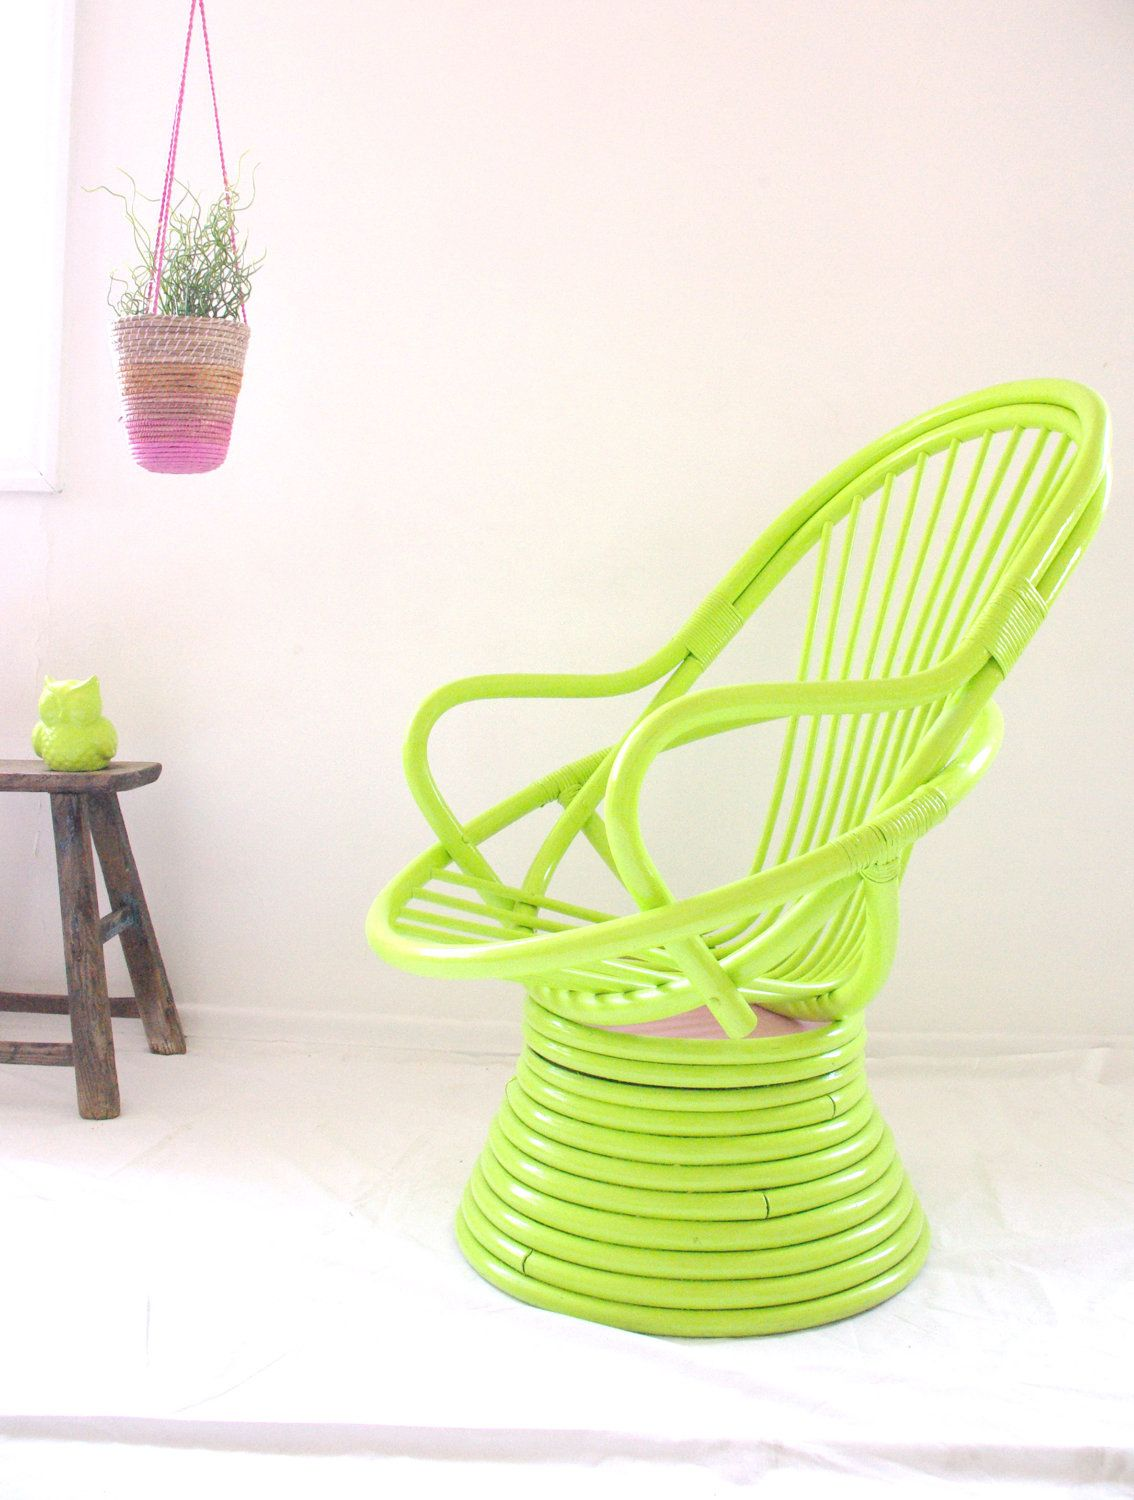 Candy Cane Retro Egg Cane Chair Upcycled By NeonVintageDesign, $590.00